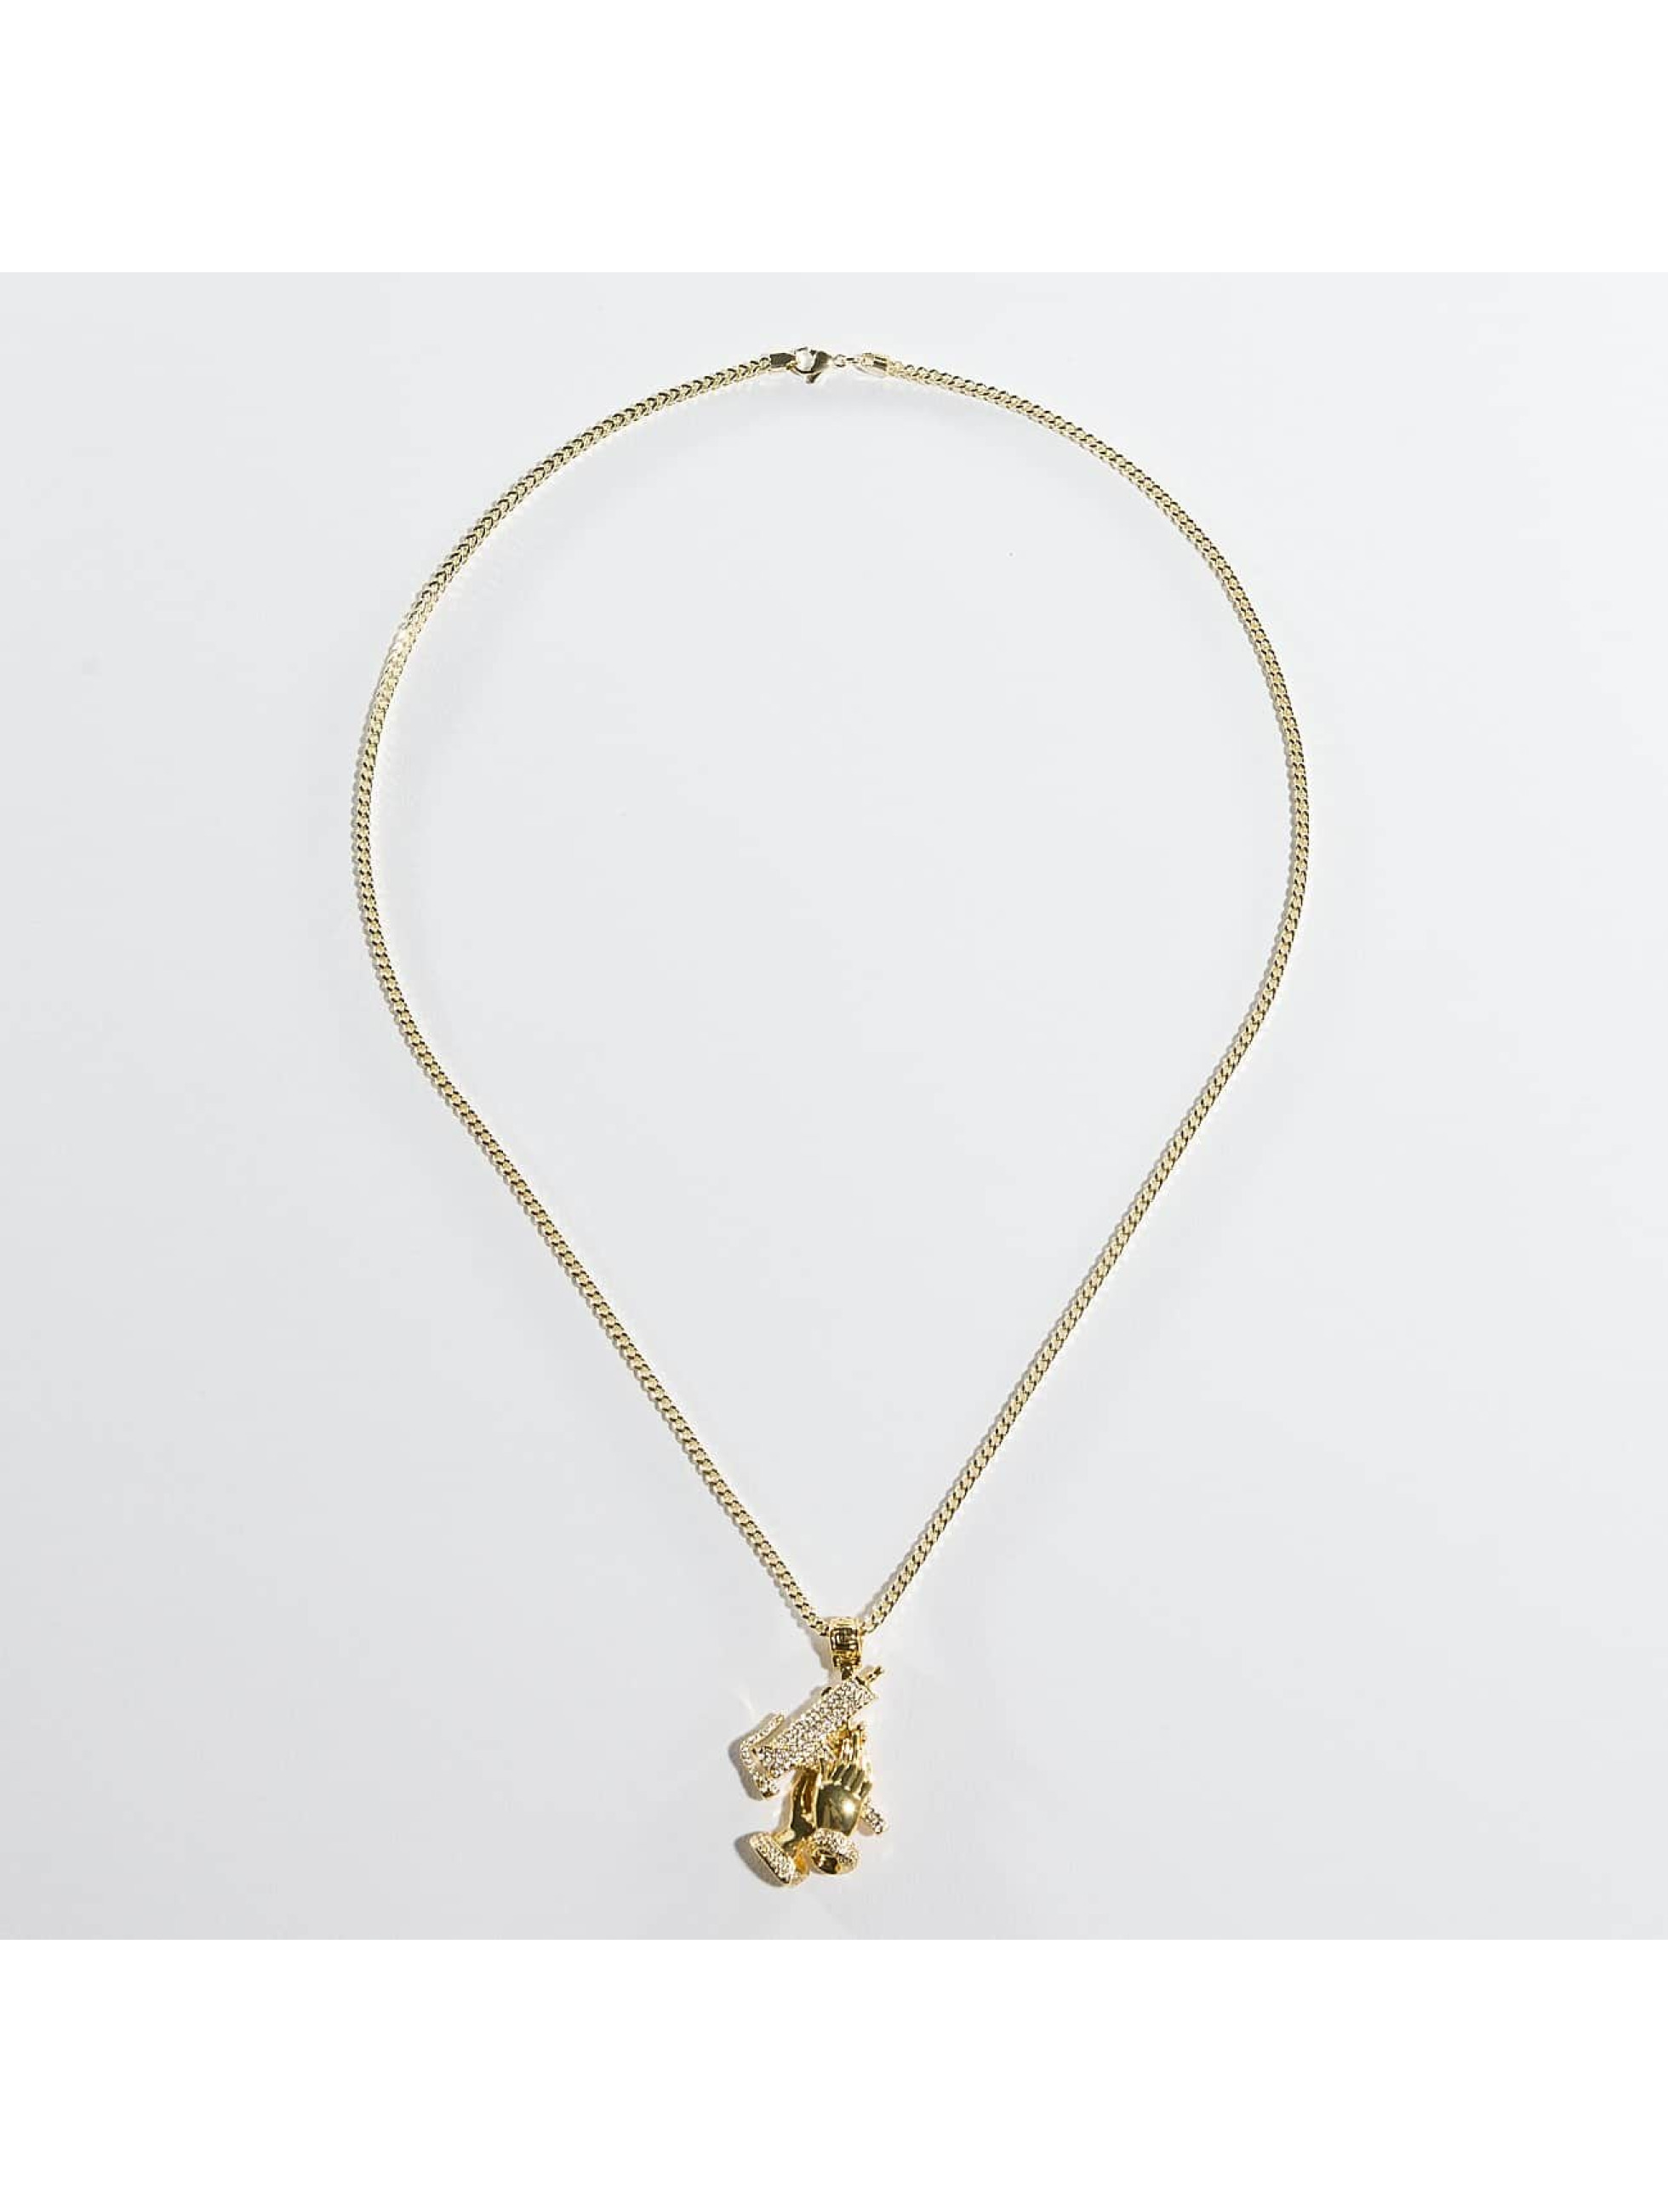 KING ICE Necklace Gold_Plated CZ Praying Hands Of Defense gold